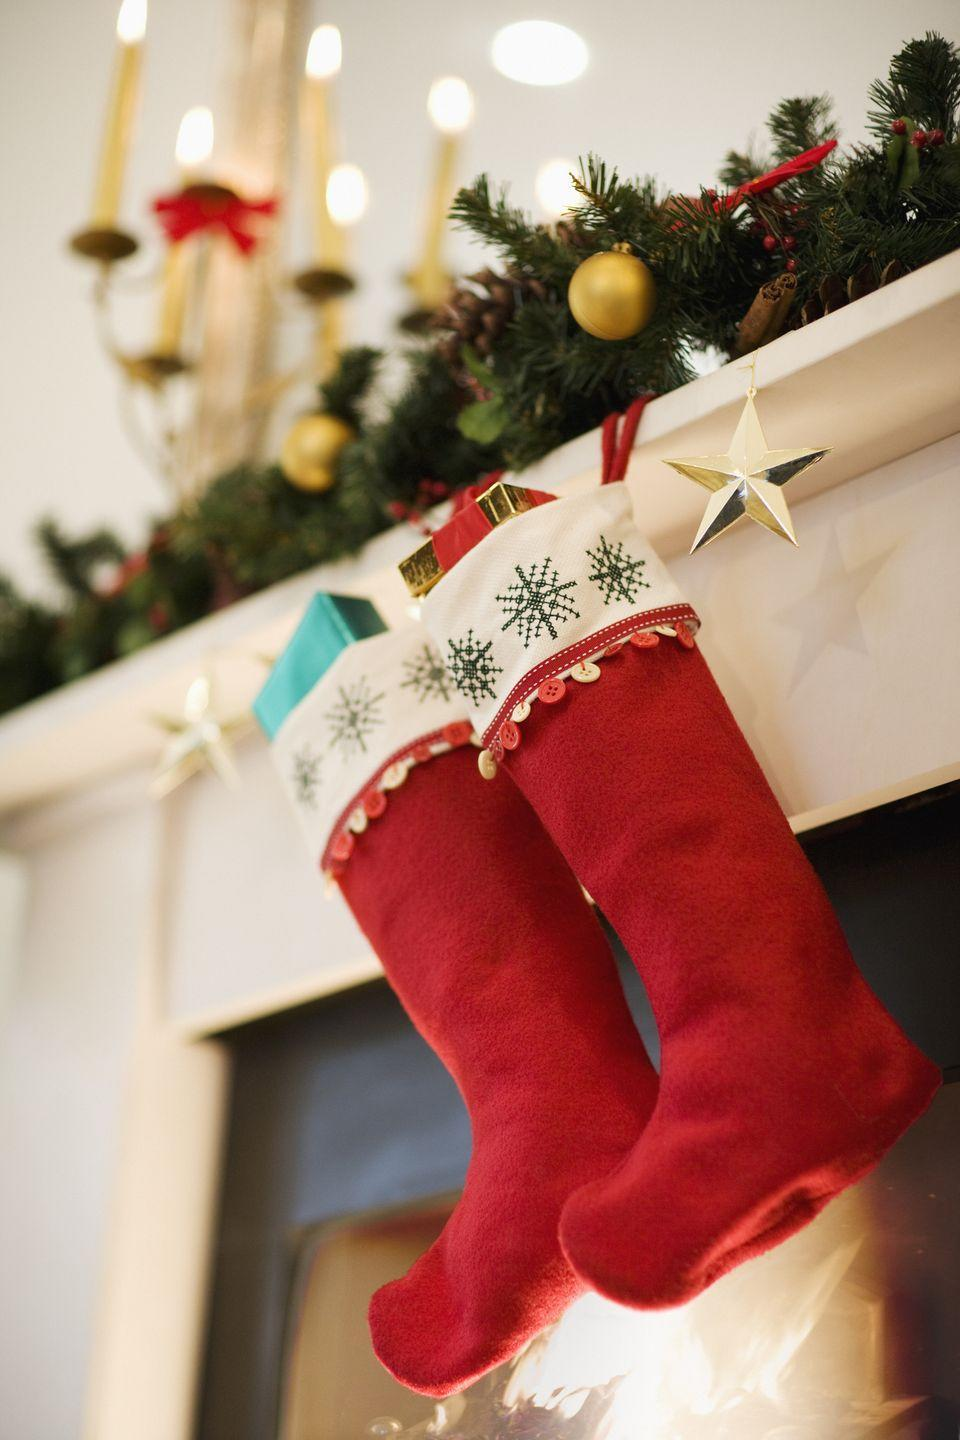 """<p>Hanging stockings takes all of five minutes, so why not extend the fun by crafting your own? You don't need any knitting skills. For an easy activity even your preschoolers can do, buy simple stockings and supplies like glitter puff paint, then let everyone get to work personalizing their own. </p><p><a class=""""link rapid-noclick-resp"""" href=""""https://www.amazon.com/Meriwoods-Christmas-Stockings-Personalized-Decorations/dp/B08F2C3HWZ?tag=syn-yahoo-20&ascsubtag=%5Bartid%7C10072.g.34454588%5Bsrc%7Cyahoo-us"""" rel=""""nofollow noopener"""" target=""""_blank"""" data-ylk=""""slk:SHOP STOCKINGS"""">SHOP STOCKINGS</a></p>"""